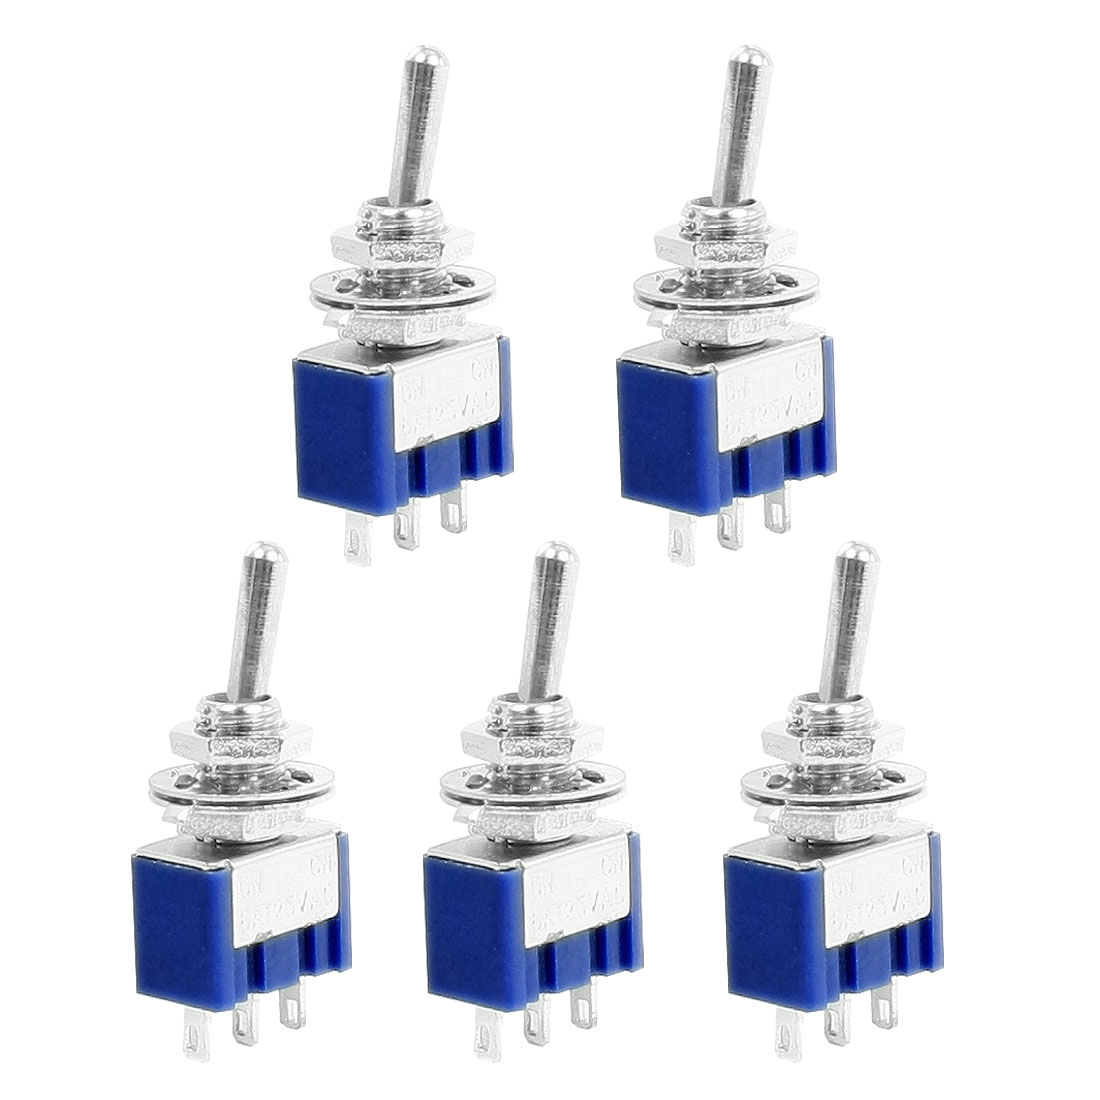 5 Pcs ON/ON Double Poles Dual Throws 3-Terminals Toggle Switch 6A 125VAC